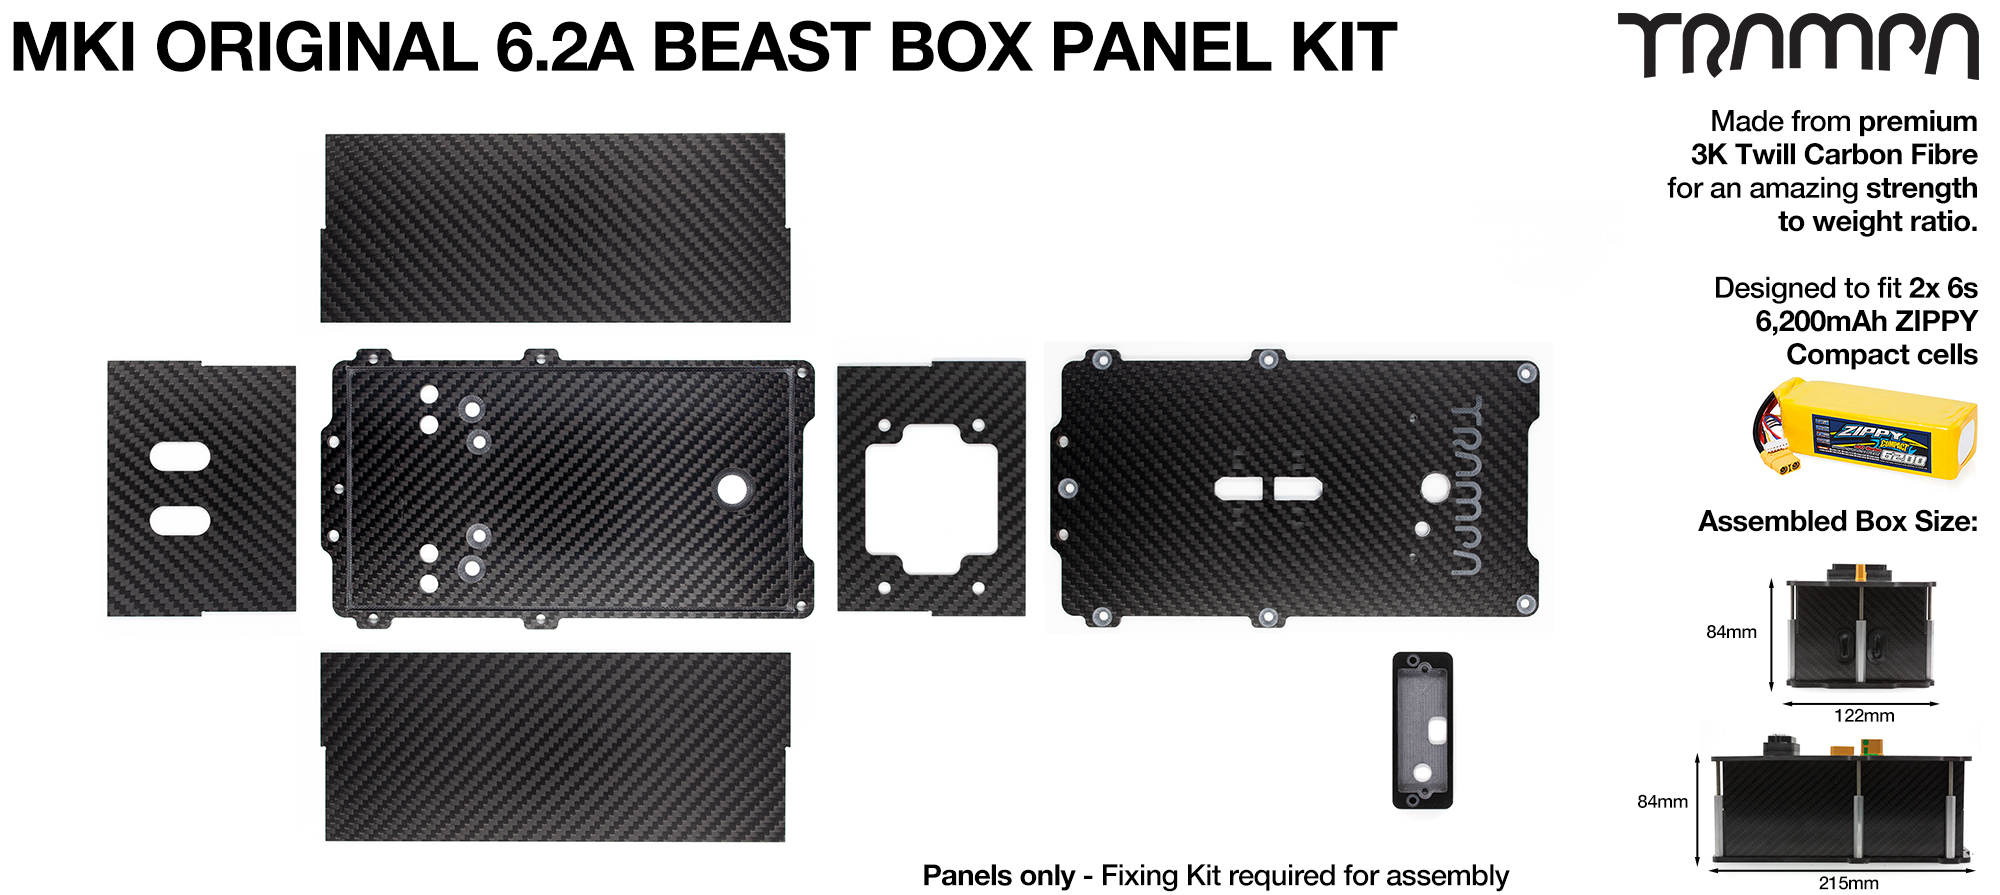 Original BEAST Box Carbon Fibre Panel kit with integrated LED & NRF Housing - Fits 2x 6200 Zippy compact